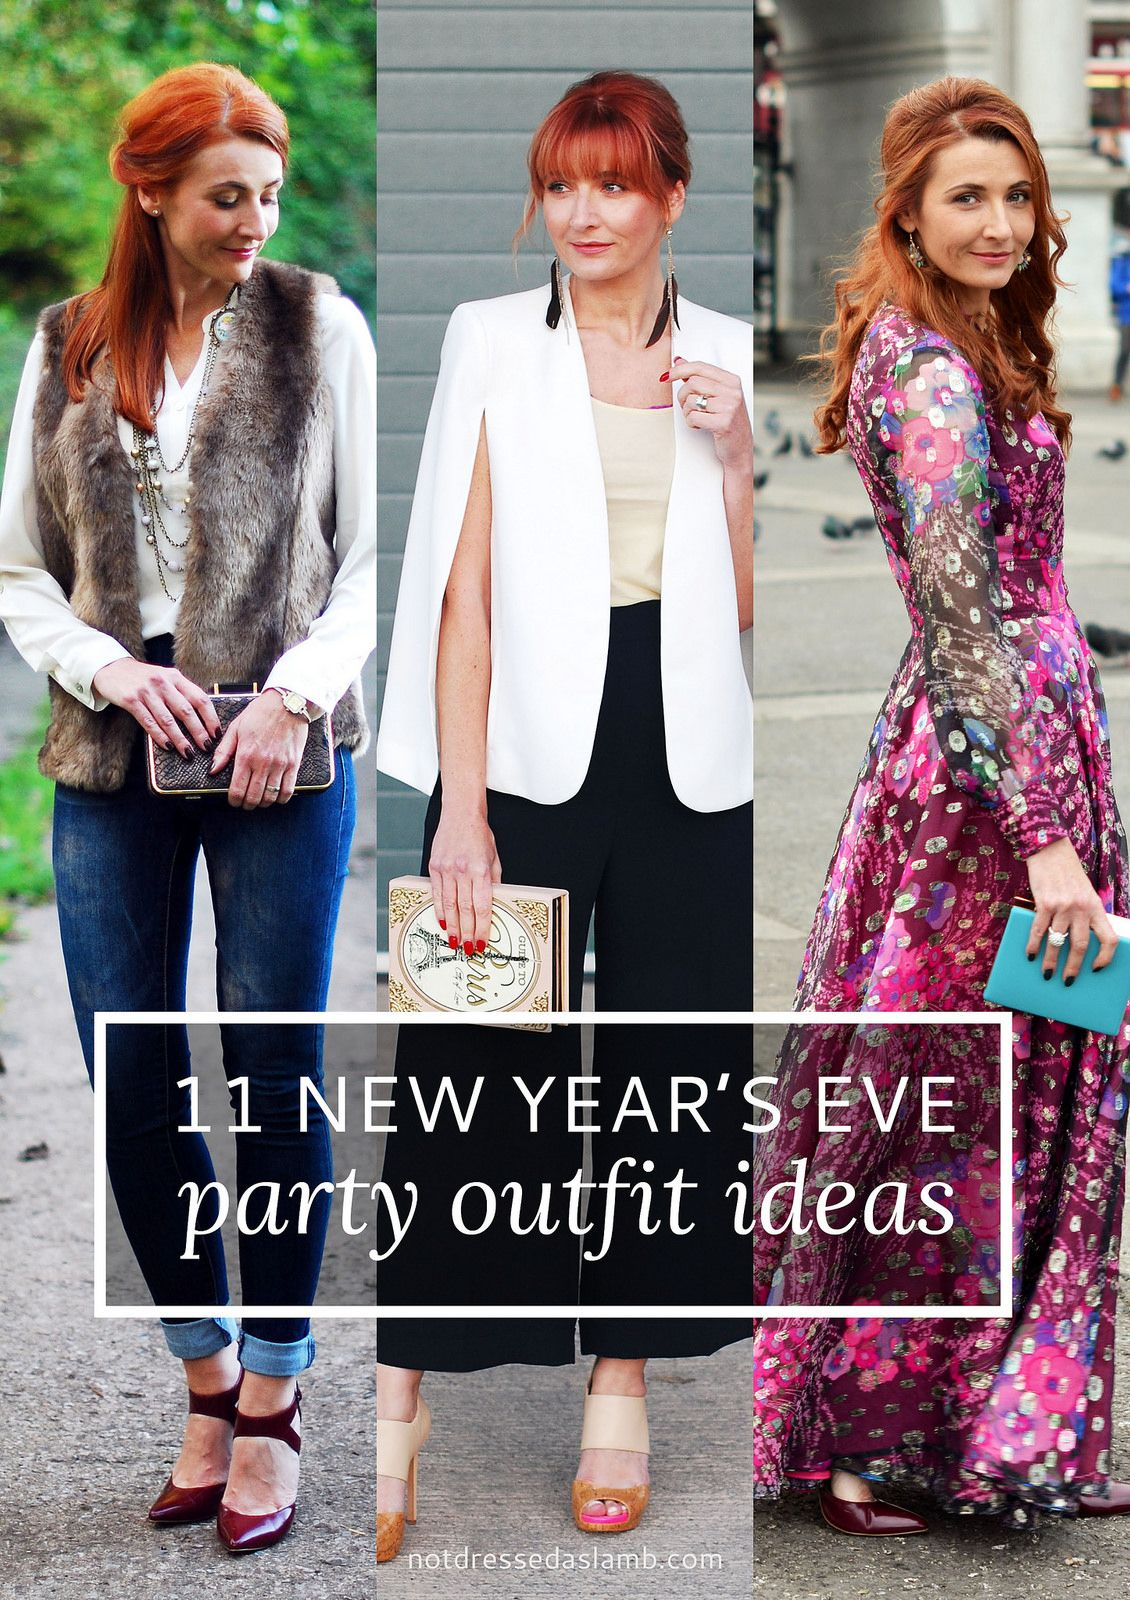 69bcbe47acdd1 Whether your party dress code is casual, dressy or formal, here are 11  outfits that'll provide all the New Year's Eve party outfit inspiration you  need.